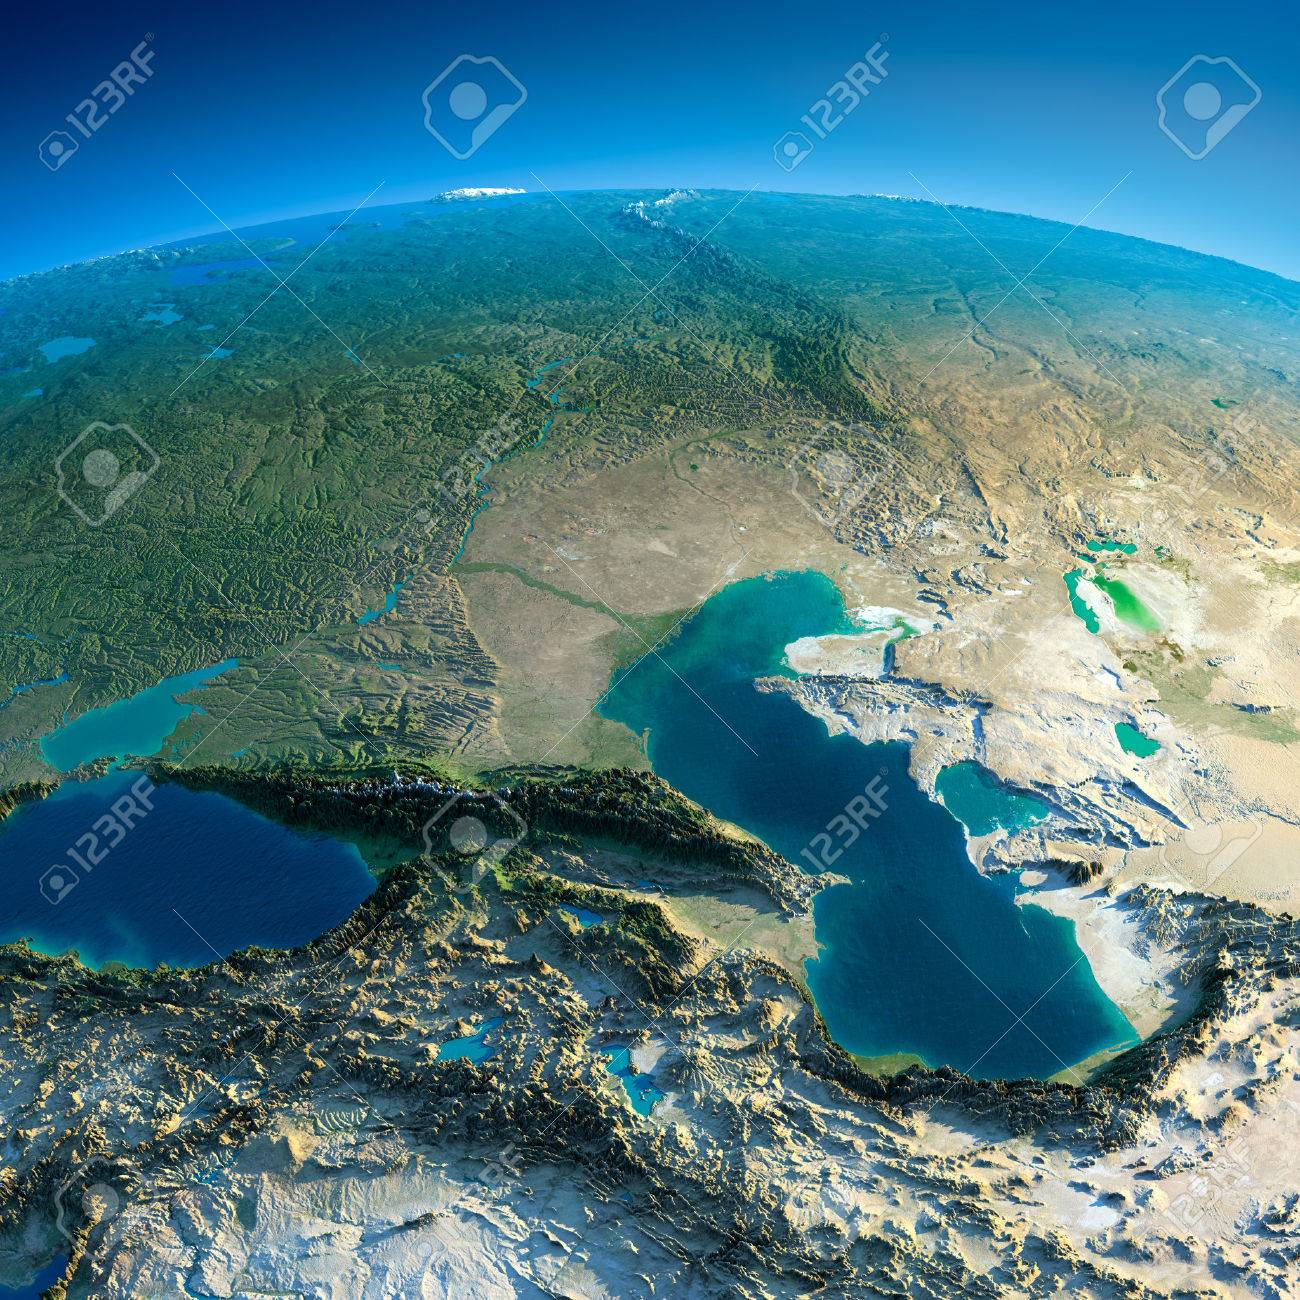 Highly detailed planet Earth in the morning Exaggerated precise relief lit morning sun Detailed Earth Caucasus - 26509249